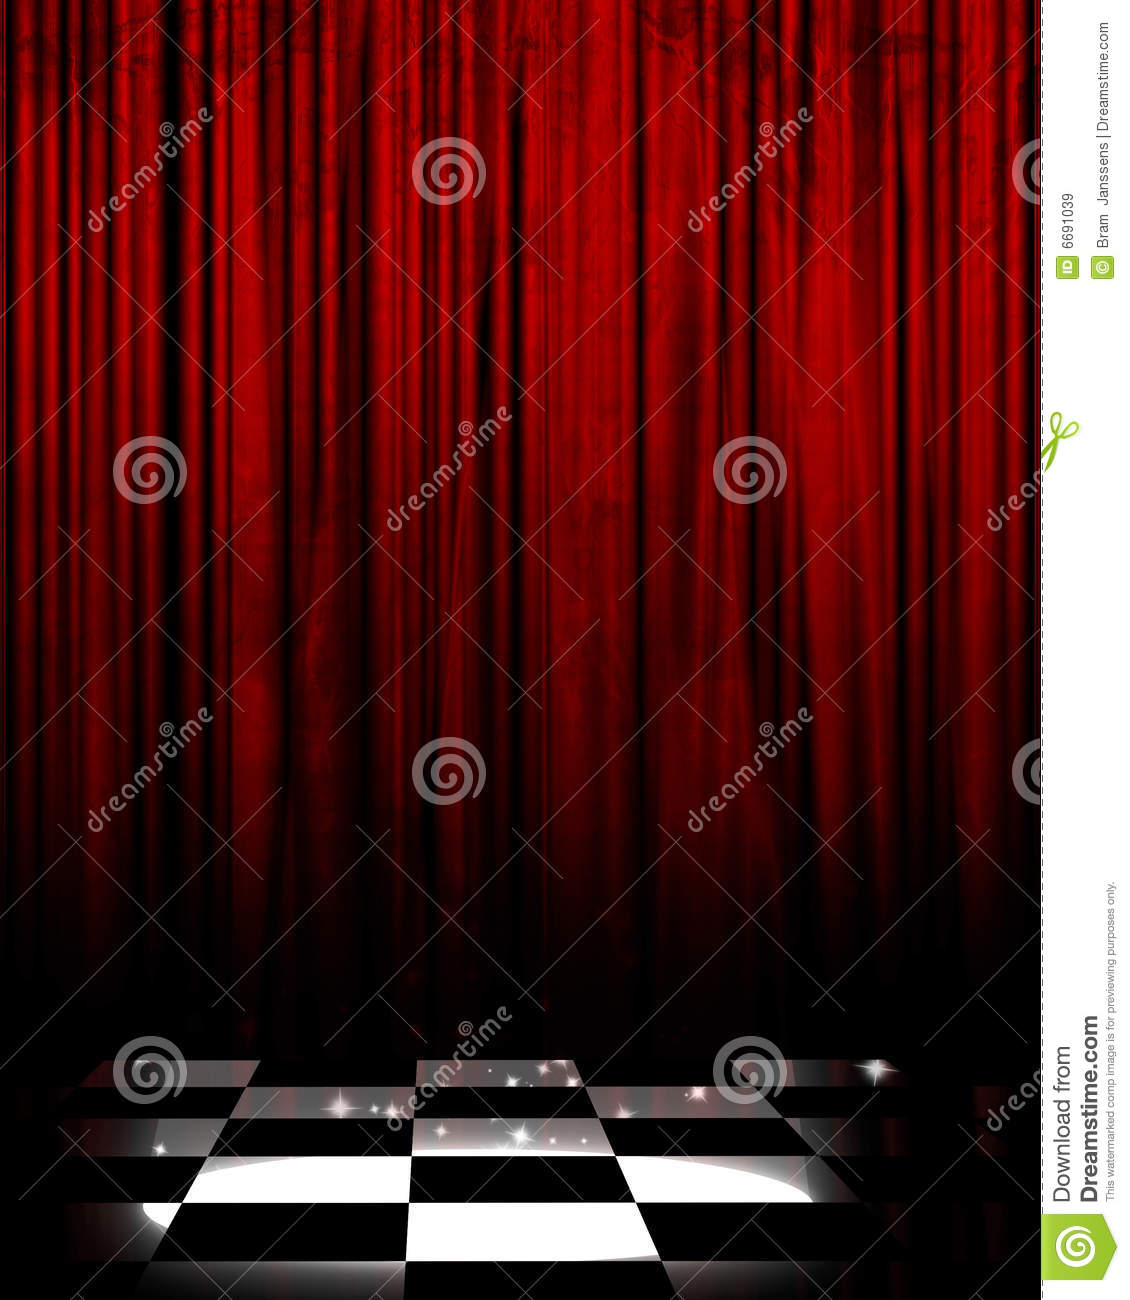 Movie or theater curtain